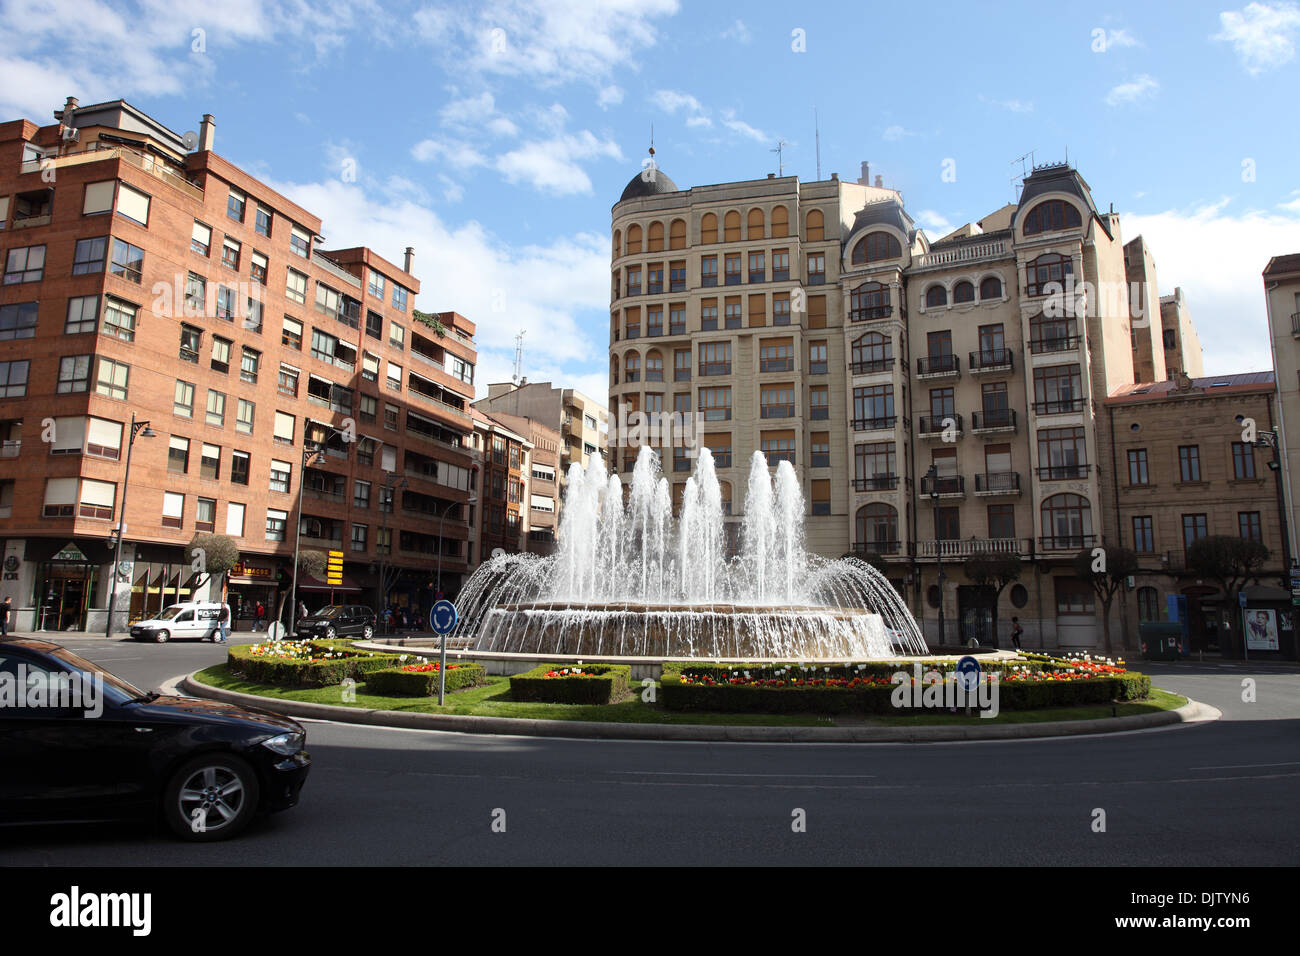 Capital Of Rioja logroño la rioja stock photos & logroño la rioja stock images - alamy